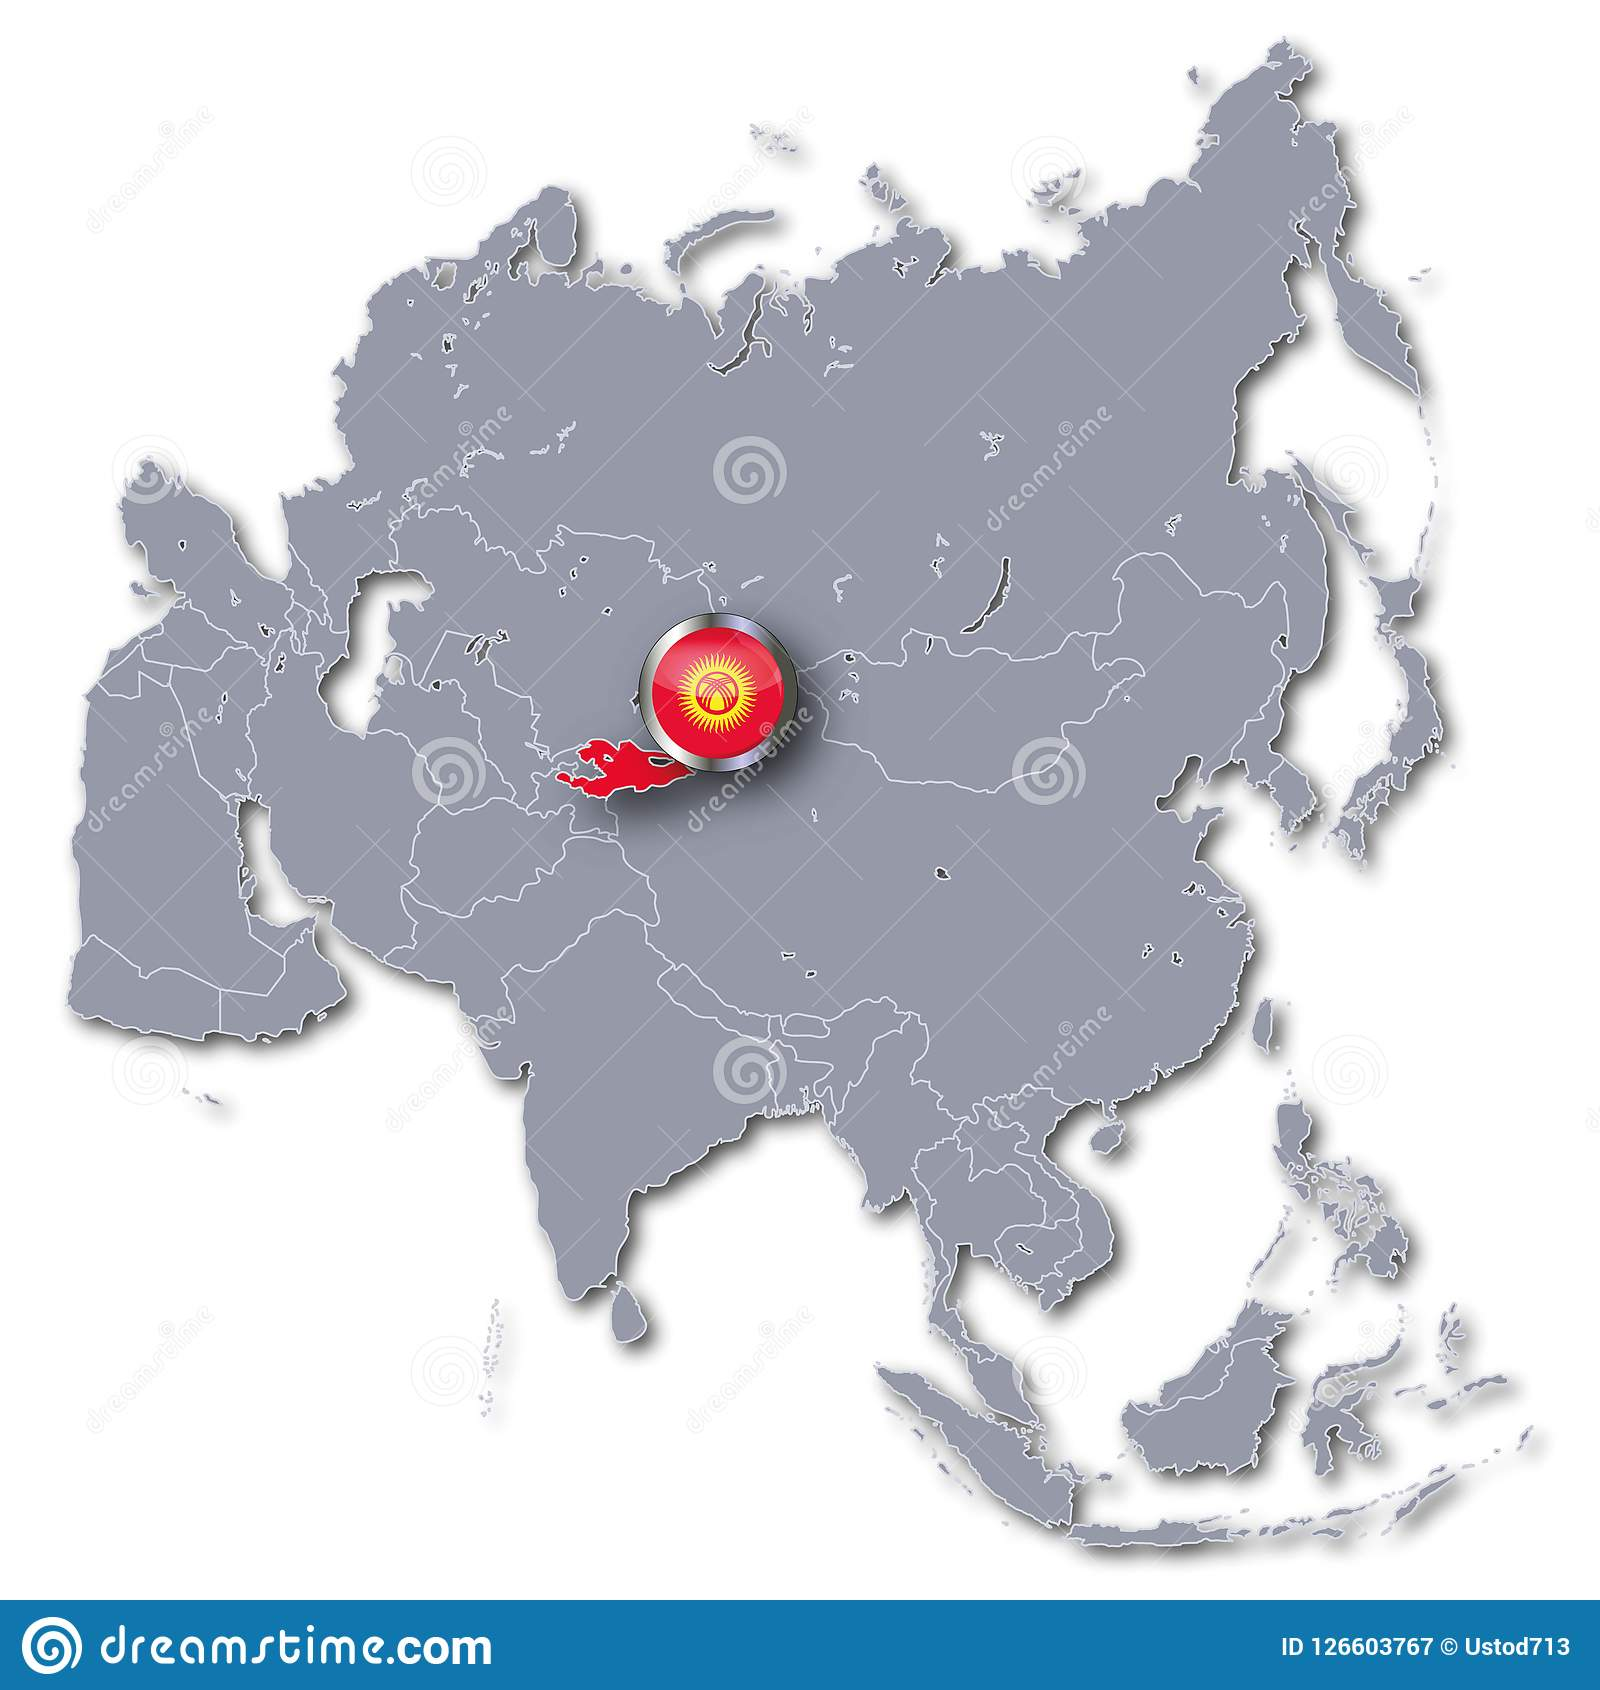 Map Of Asia Kyrgyzstan.Asia Map With Kyrgyzstan Stock Illustration Illustration Of Gray